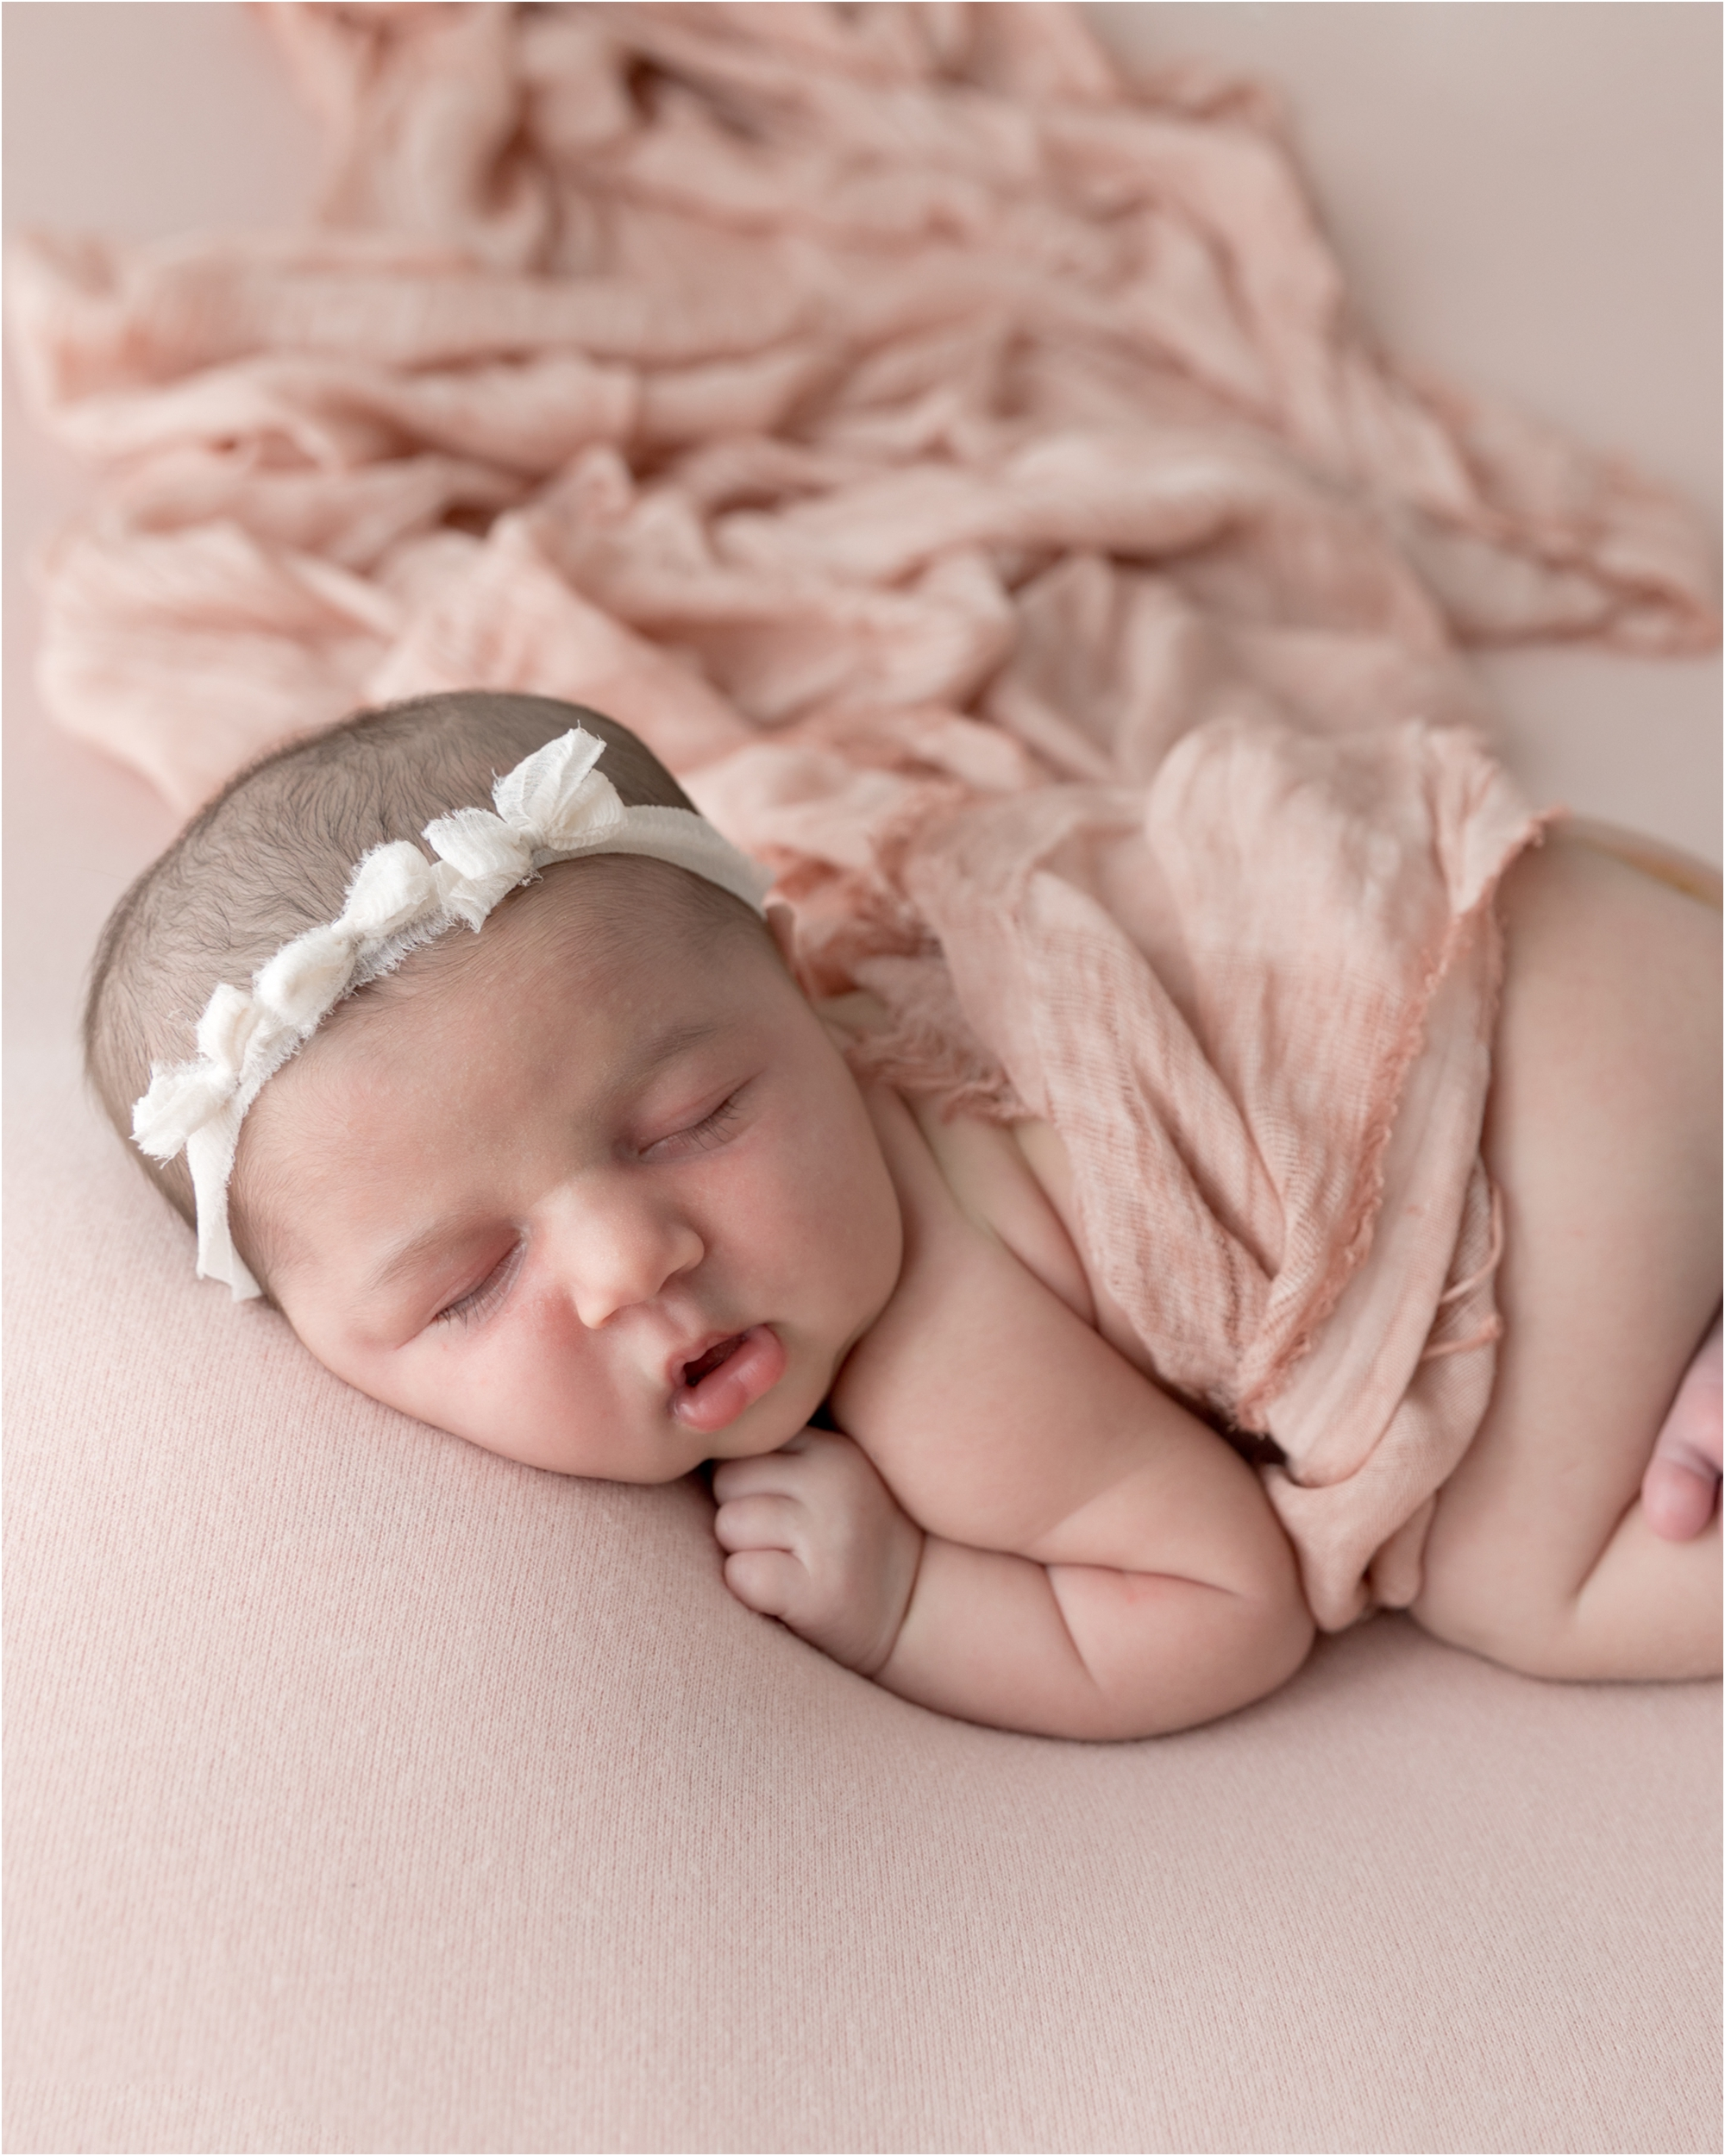 Baby girl on blush pink backdrop during newborn session in Houston studio. Photo by Lifetime of Clicks Photography.